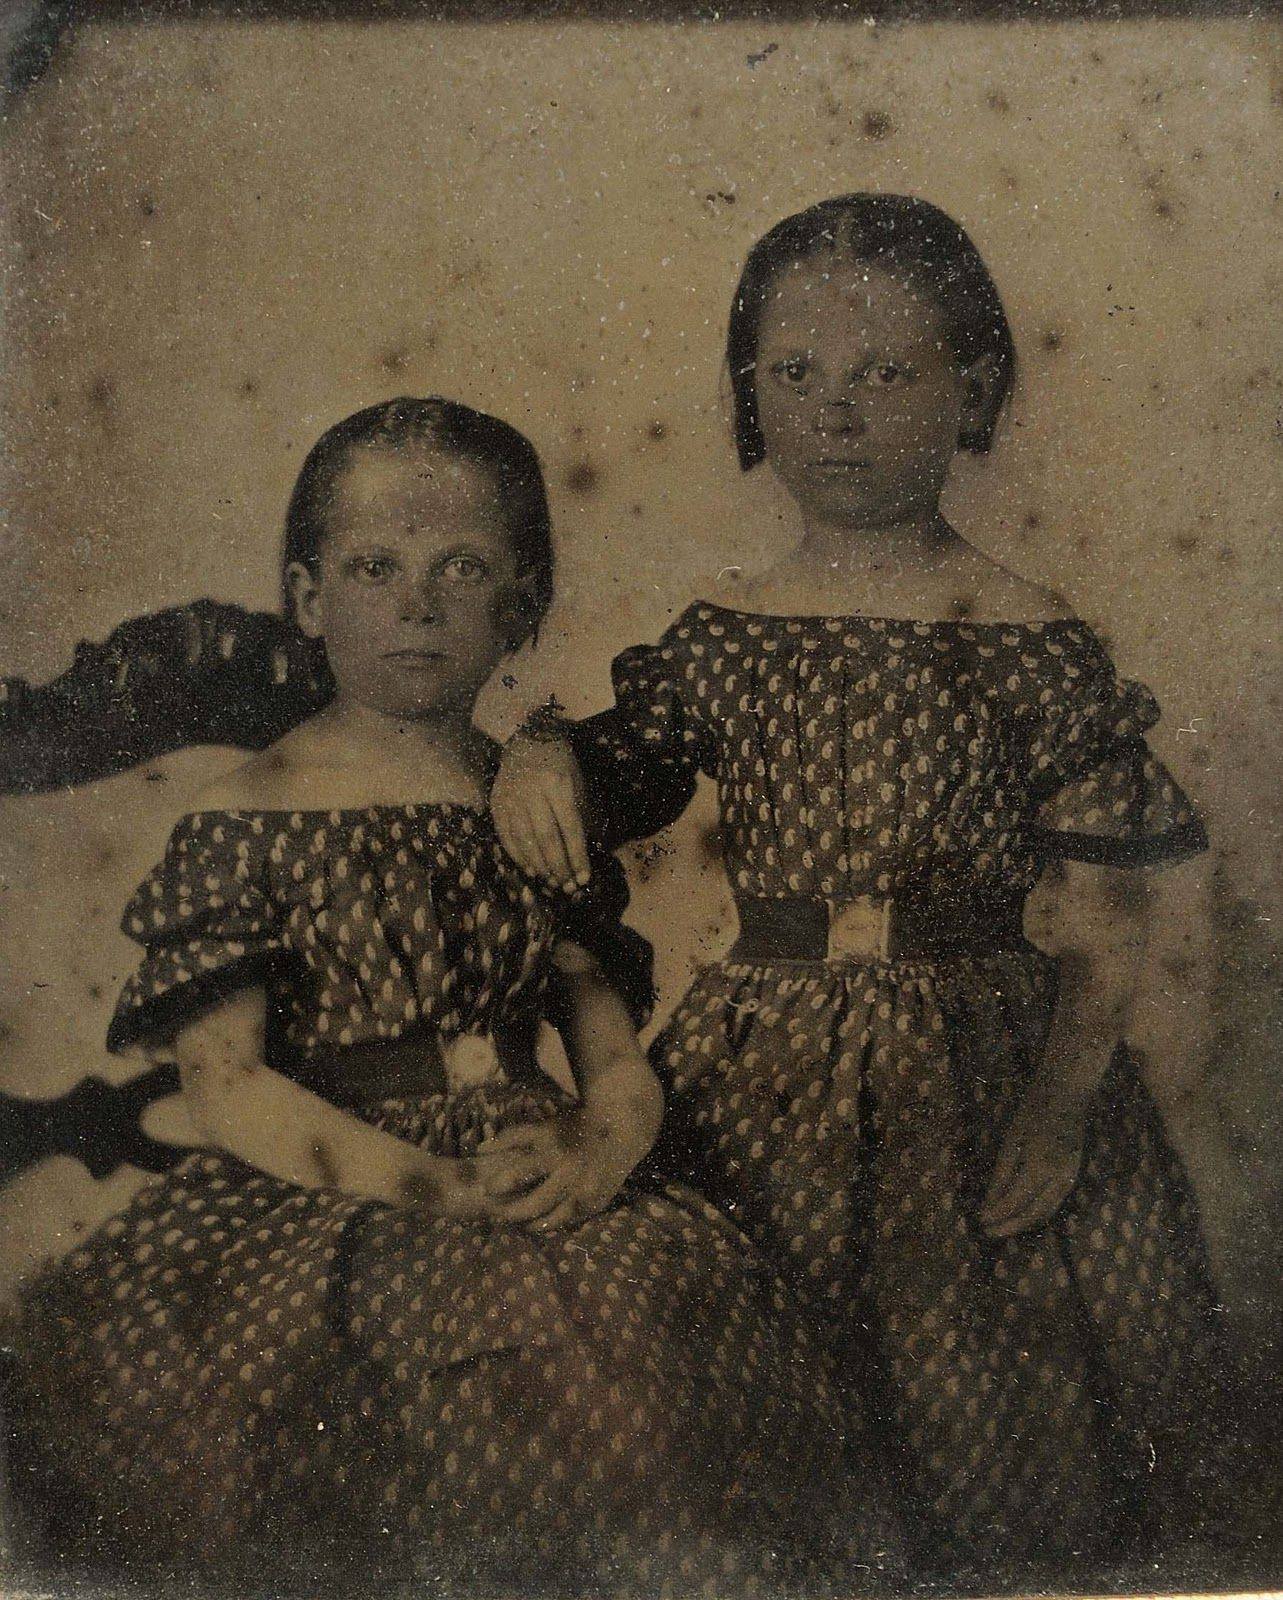 Creepy pictures from the 1800s